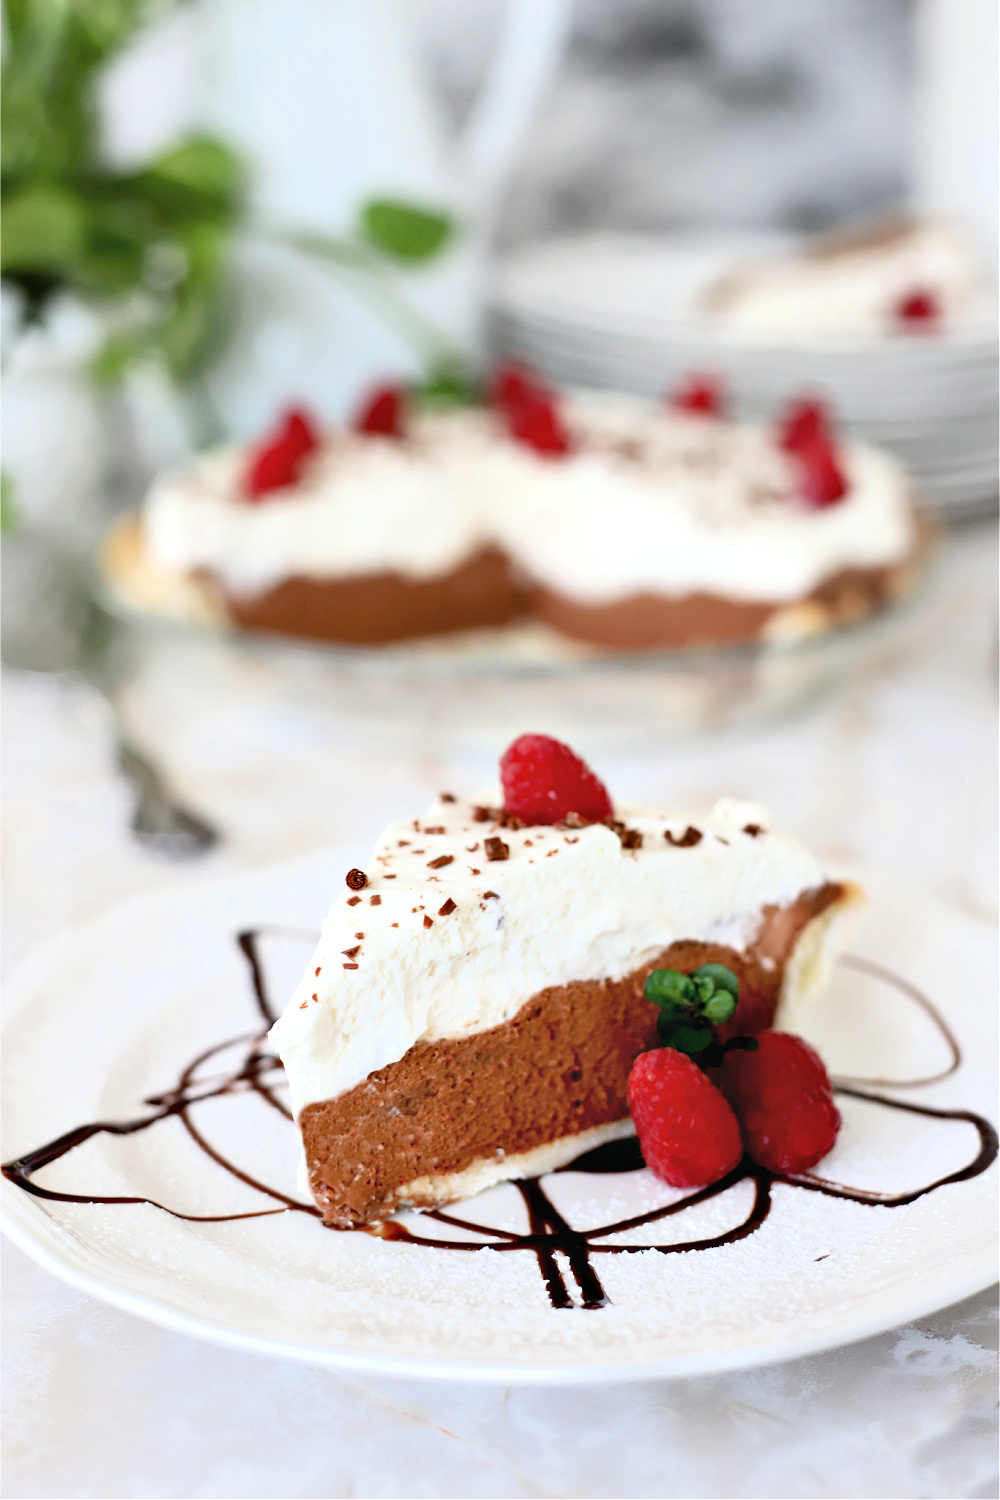 Easy recipe for a creamy, decadent chocolate cream pie with cream cheese and dark chocolate chips using a homemade or refrigerator pie crust.